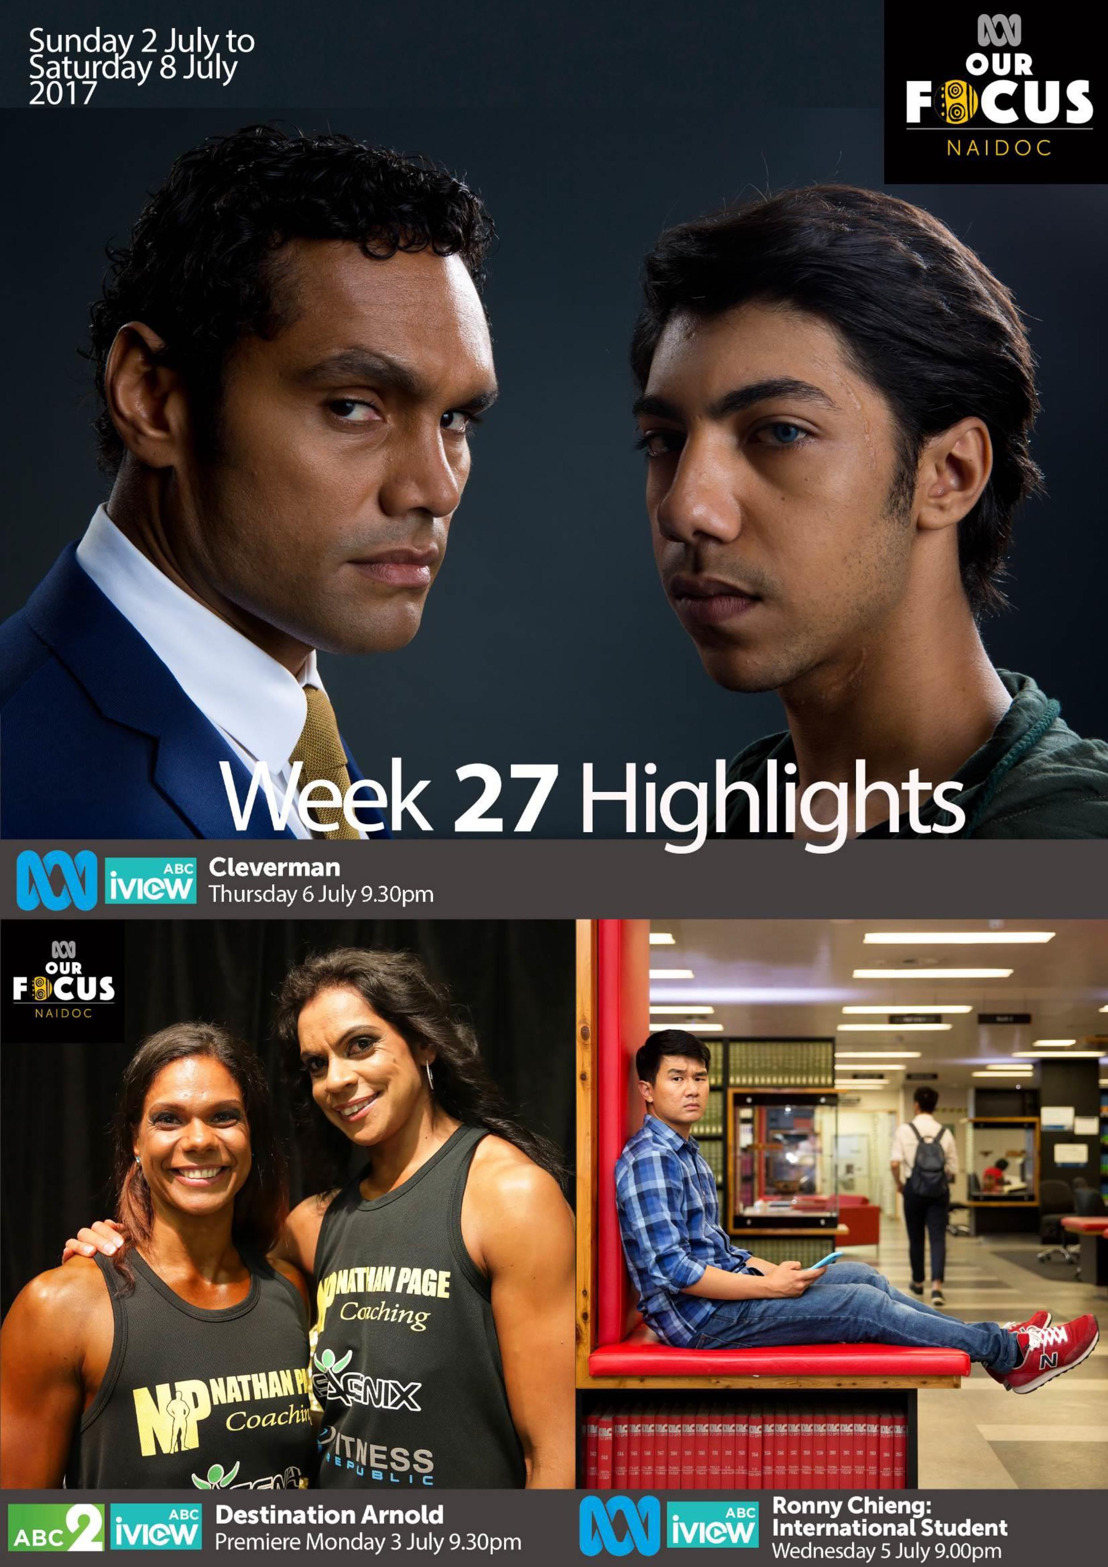 ABC Program Highlights - Week 27